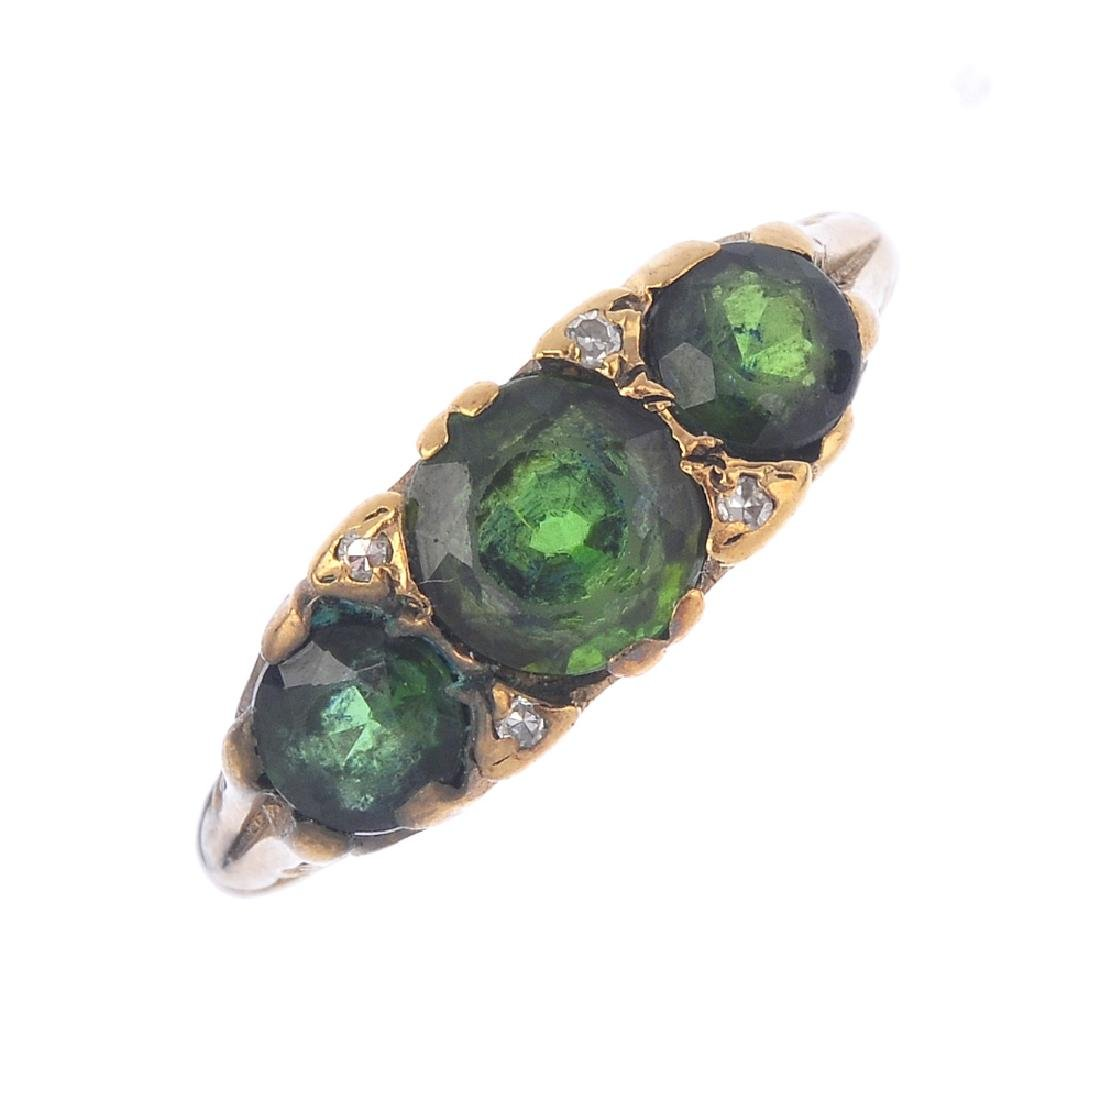 A tourmaline and diamond three-stone ring. The